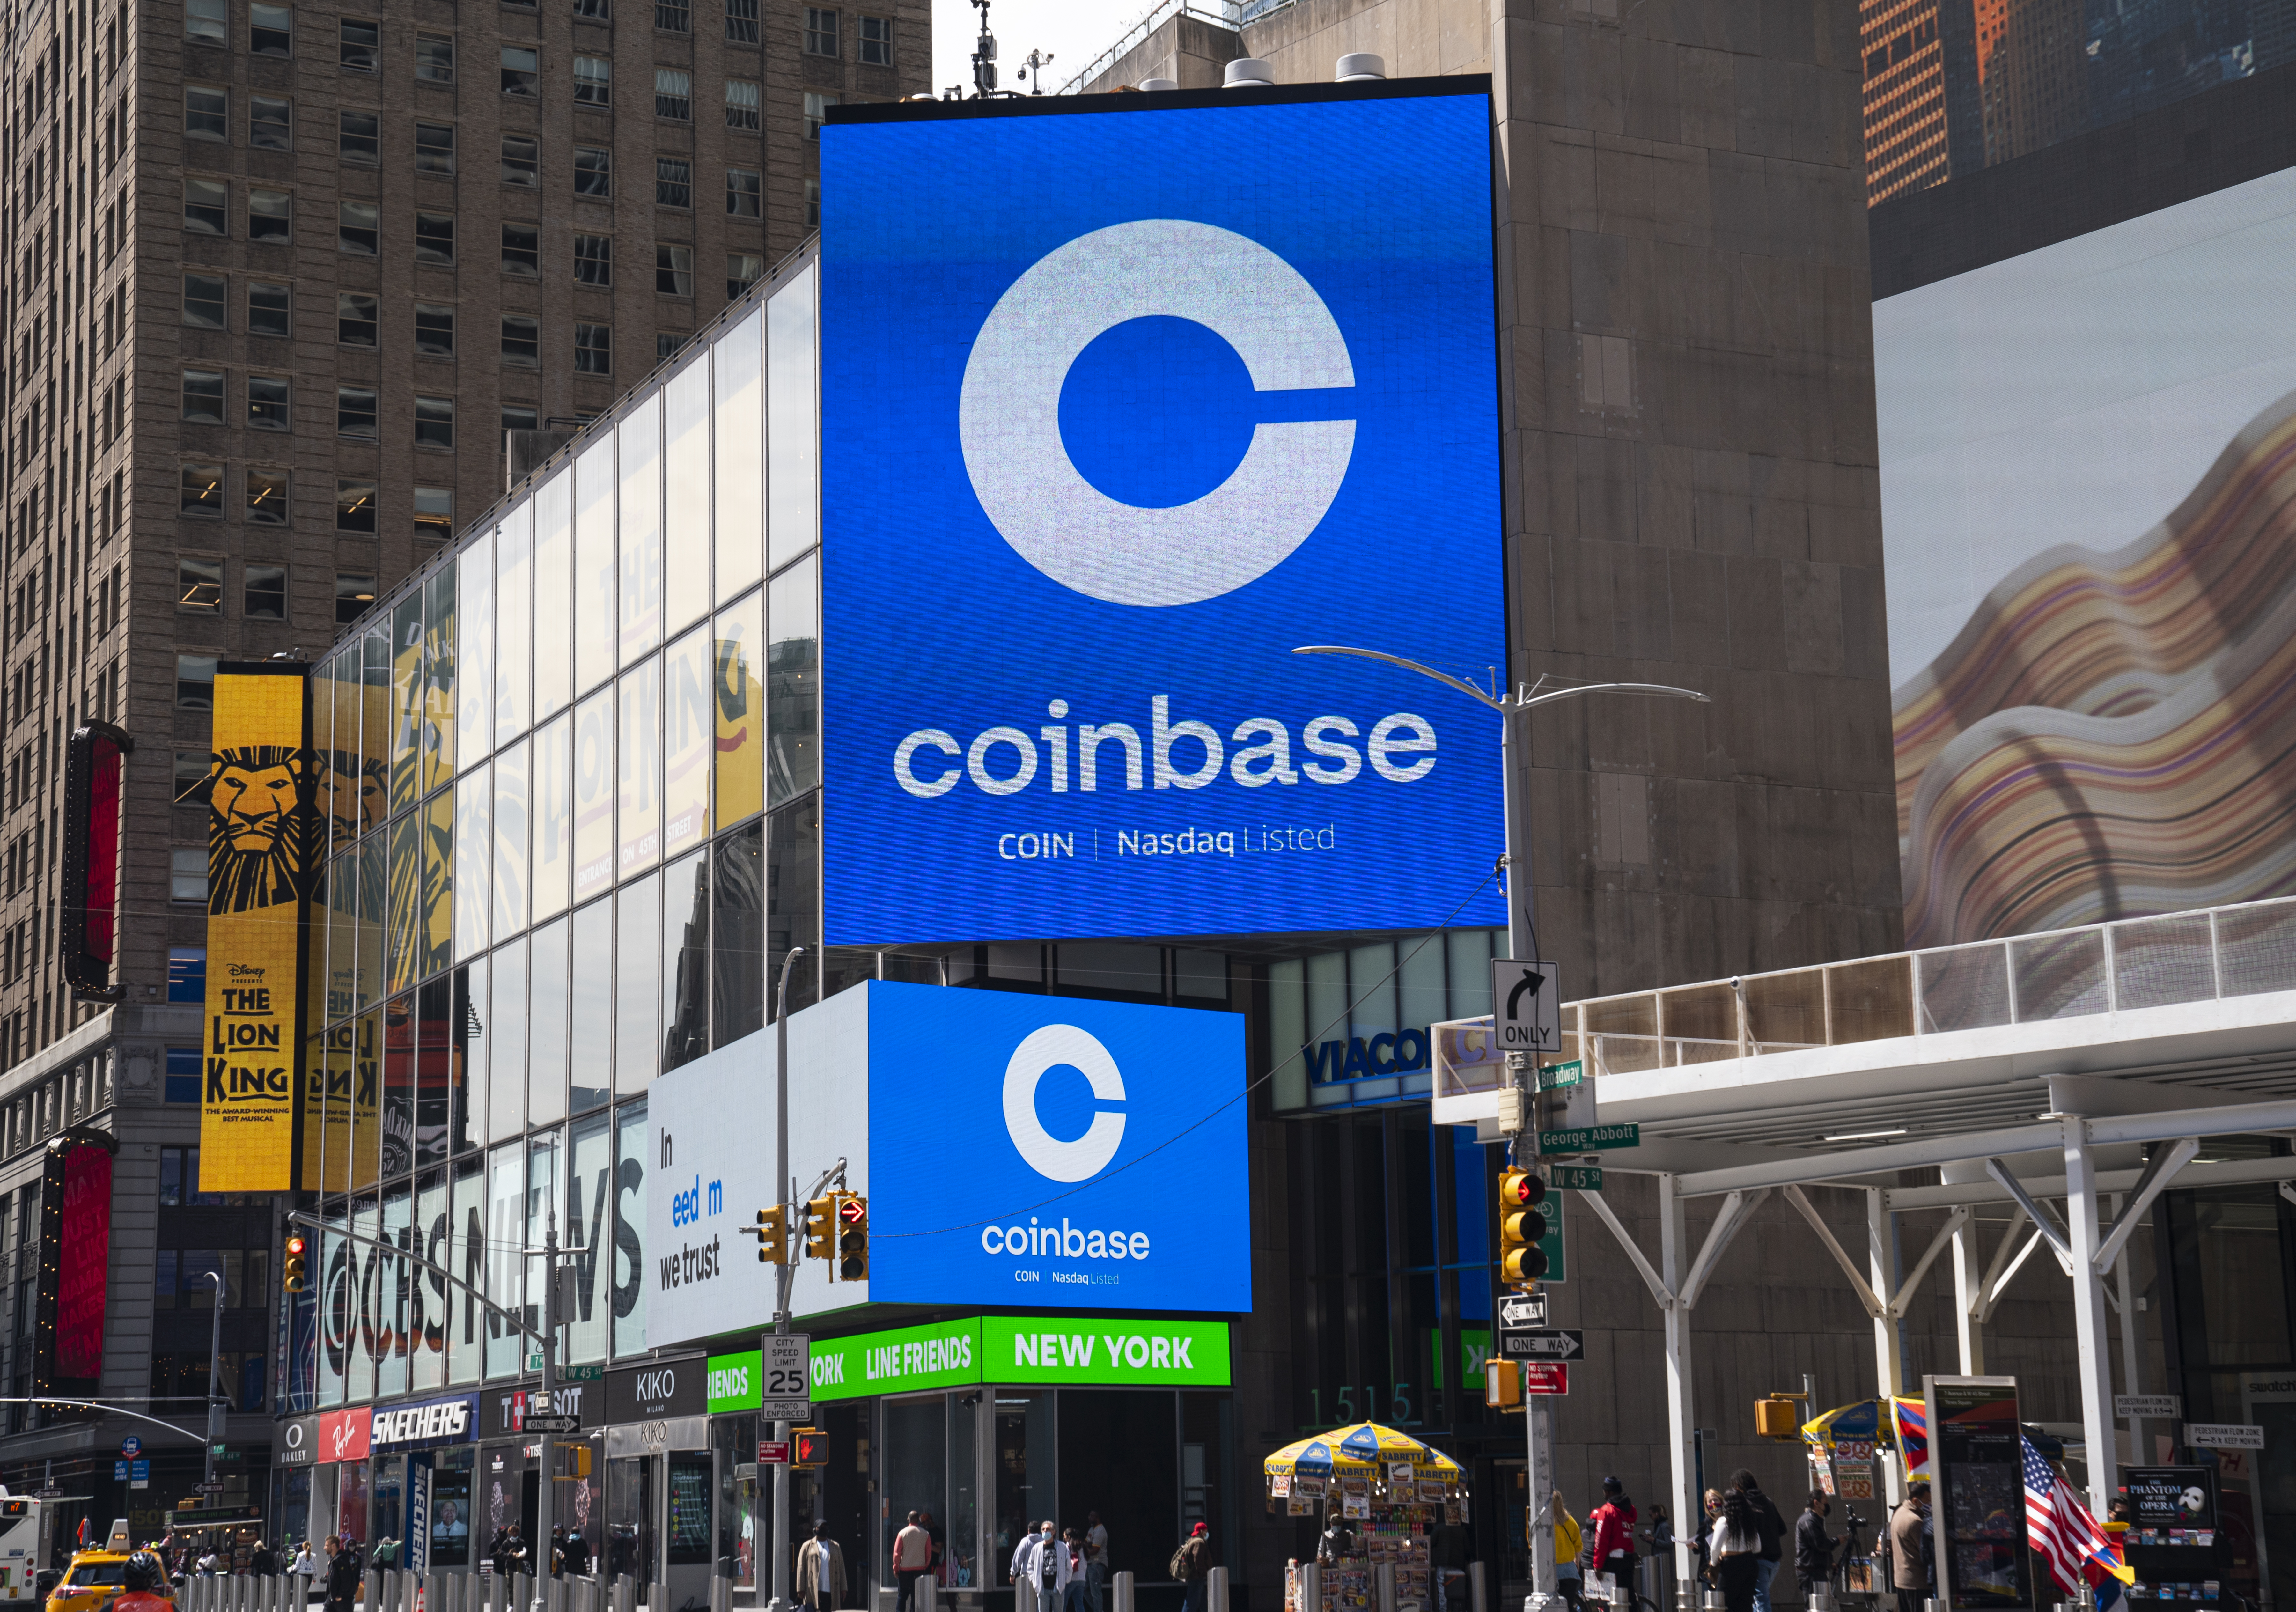 <p>Monitors display Coinbase signage during the company's initial public offering at the Nasdaq market site April 14, 2021 in New York City.</p>